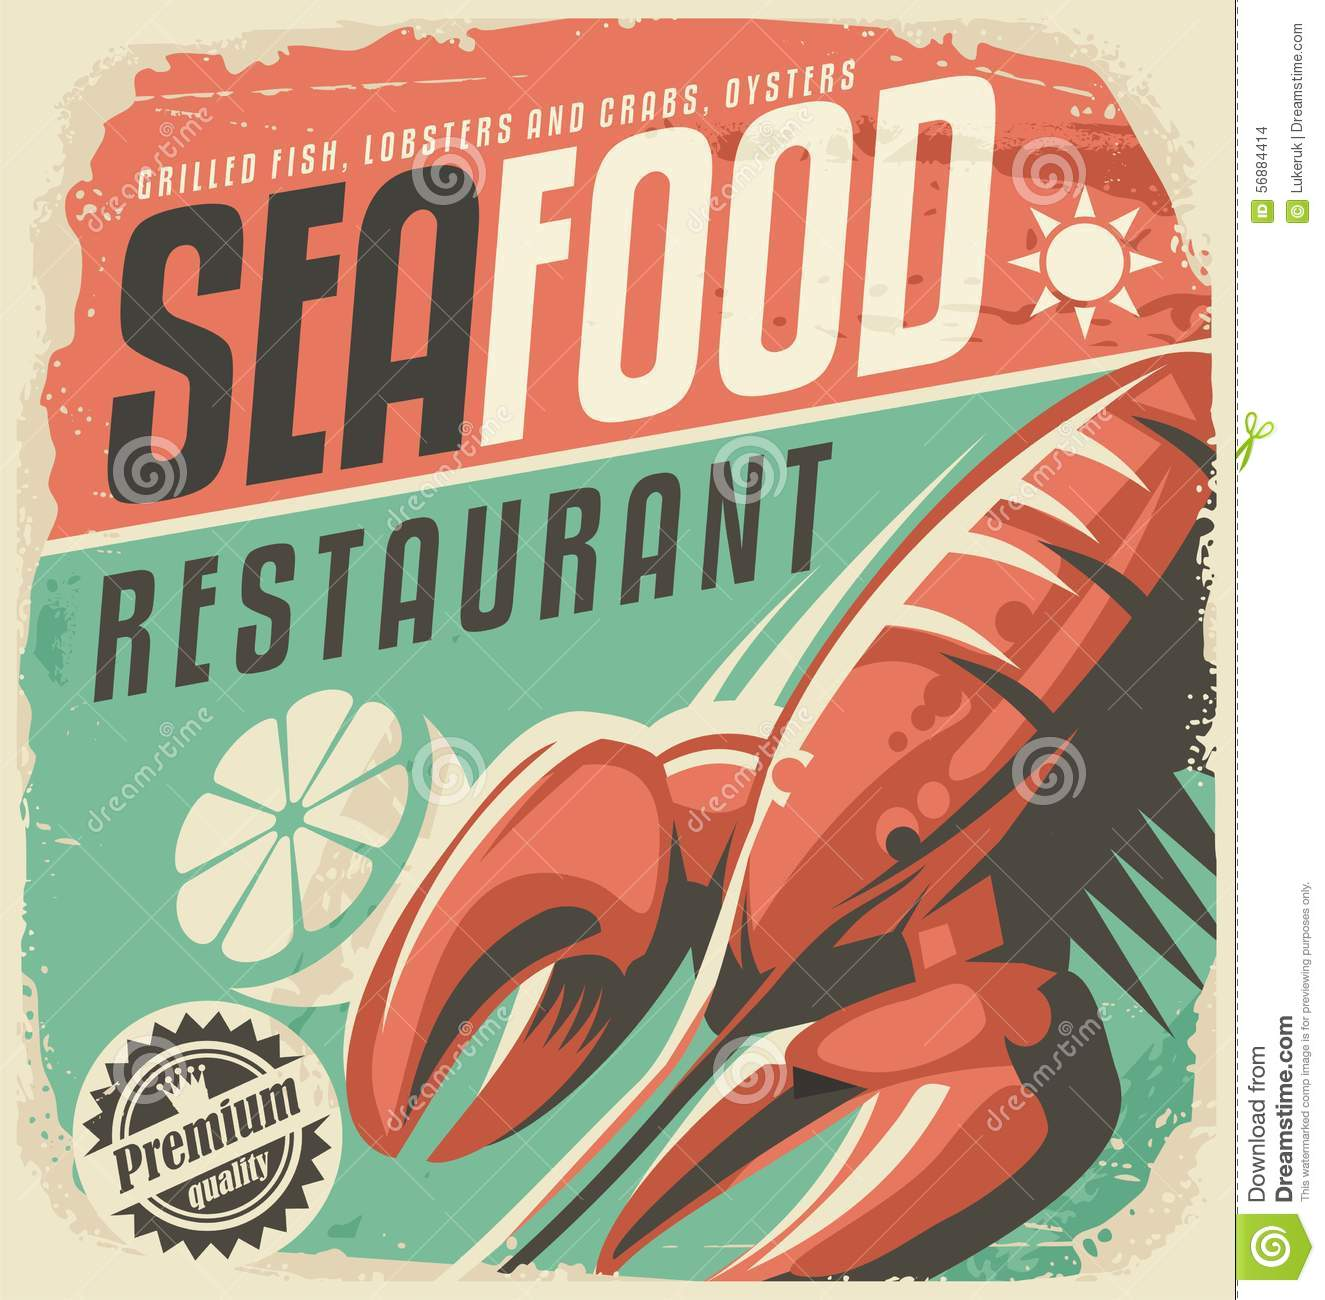 ... Seafood Restaurant Poster With Lobster Stock Vector - Image: 56884414